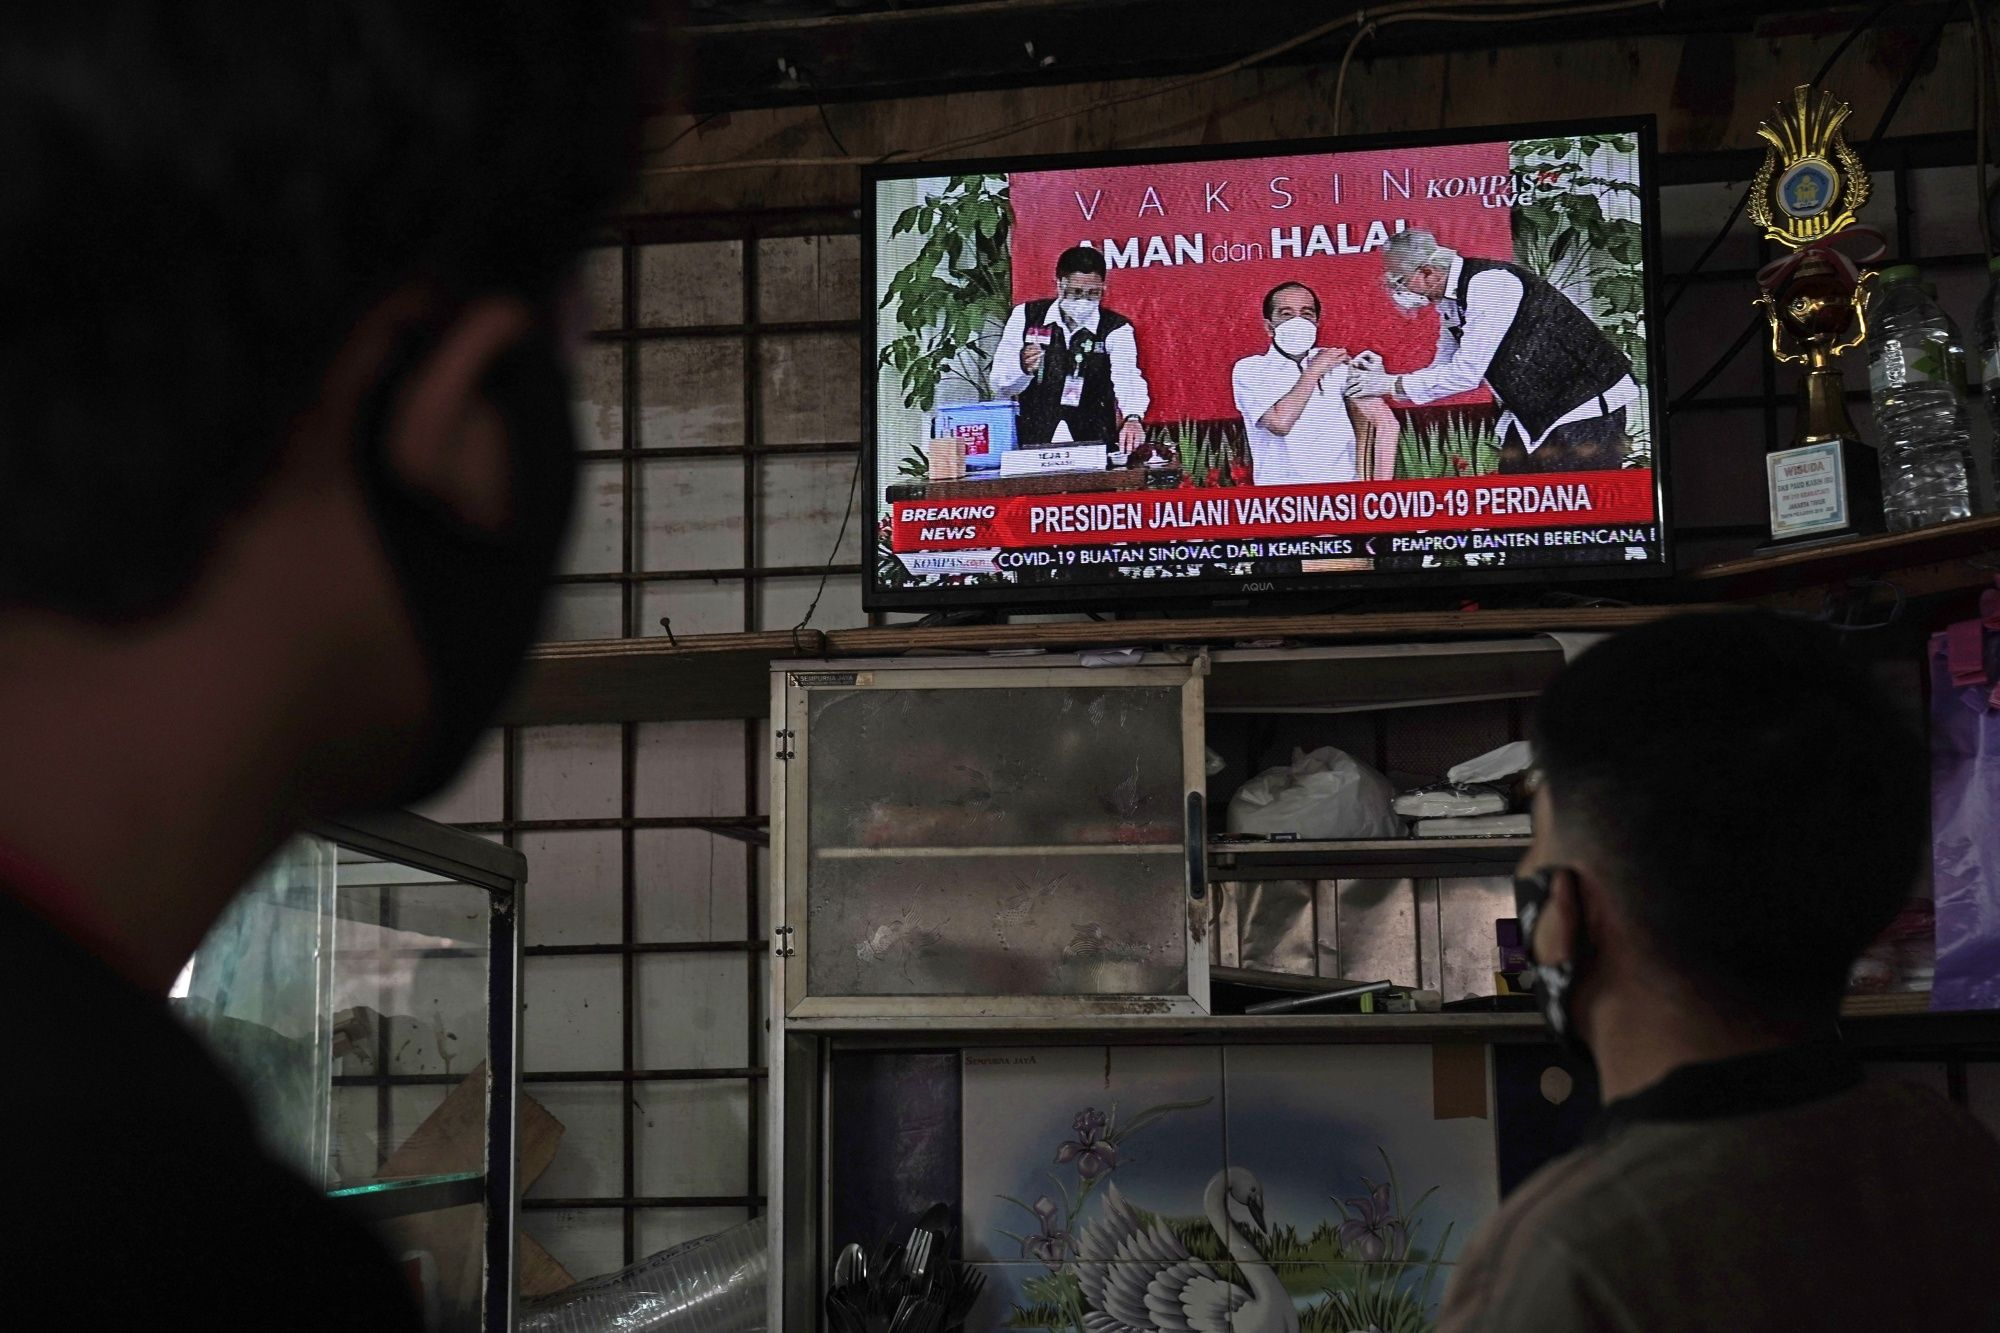 People watch a live news broadcast of Indonesia's President Joko Widodo receiving a dose of the Sinovac Biotech Ltd. Covid-19 vaccine, in Jakarta, Indonesia, on Wednesday, Jan. 13, 2021. Jokowi, as the first president's widely know, received the first dose of China's Sinovac vaccine in a televised event as he seeks to build public confidence in the shots.